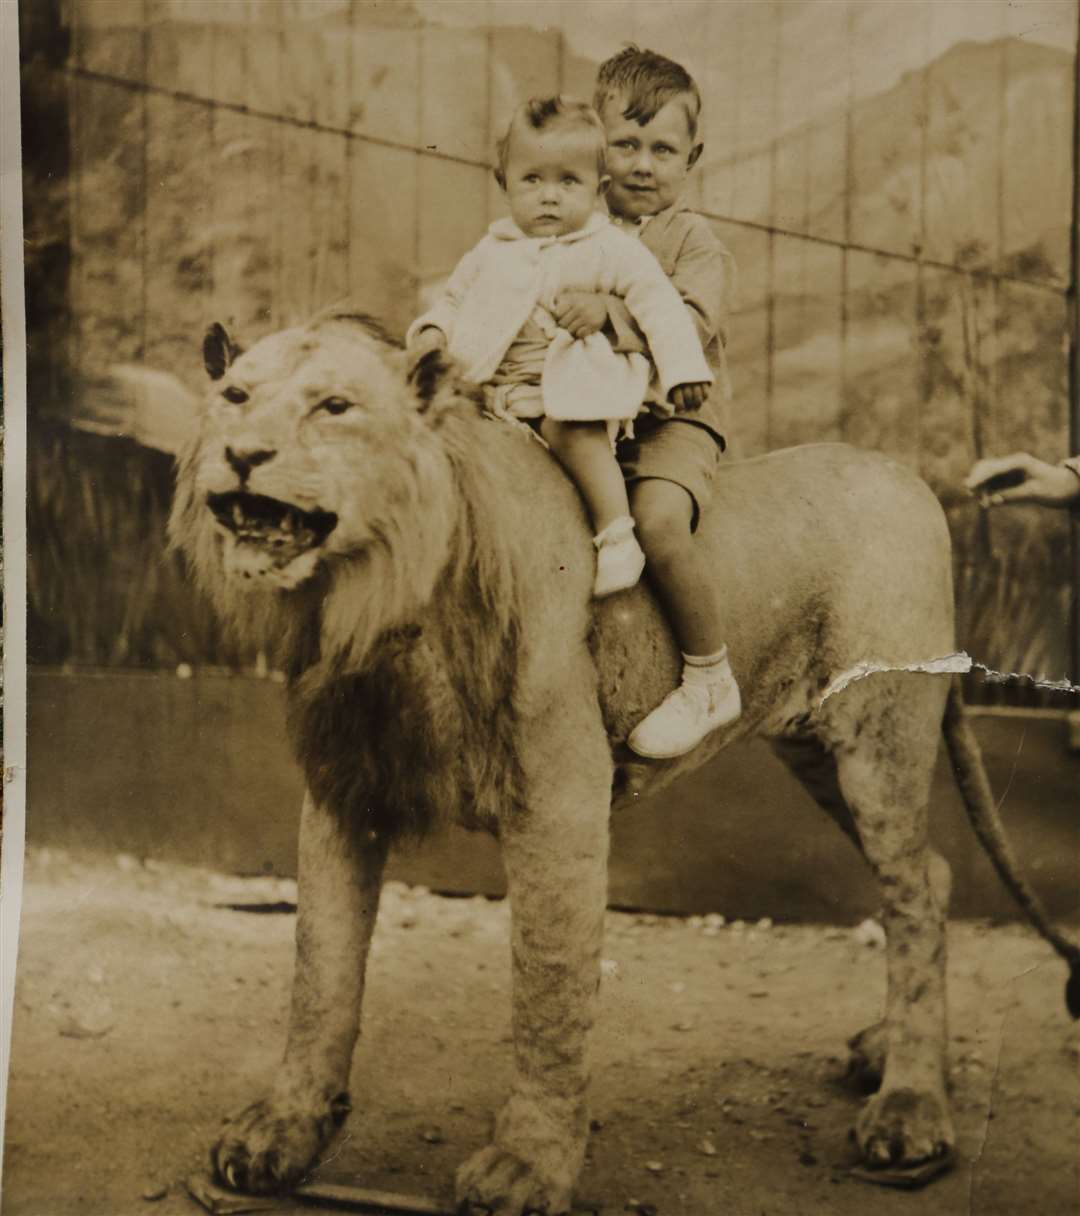 Brothers Gordon and Alec Crouch pose on the lion in 1936